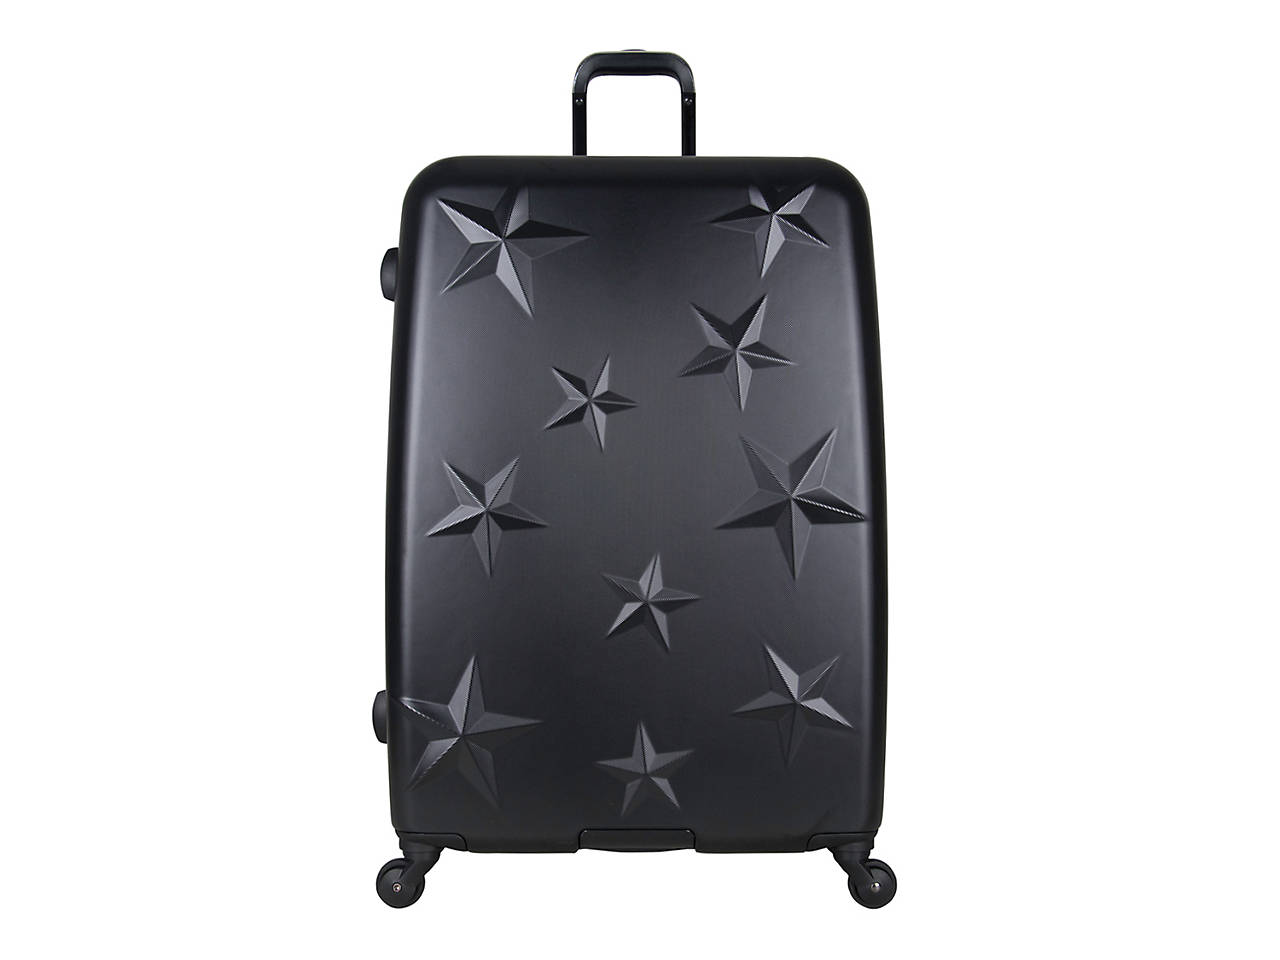 d53fbfb3c Aimee Kestenberg - Luggage Star Molded 28-Inch Checked Hard Shell ...